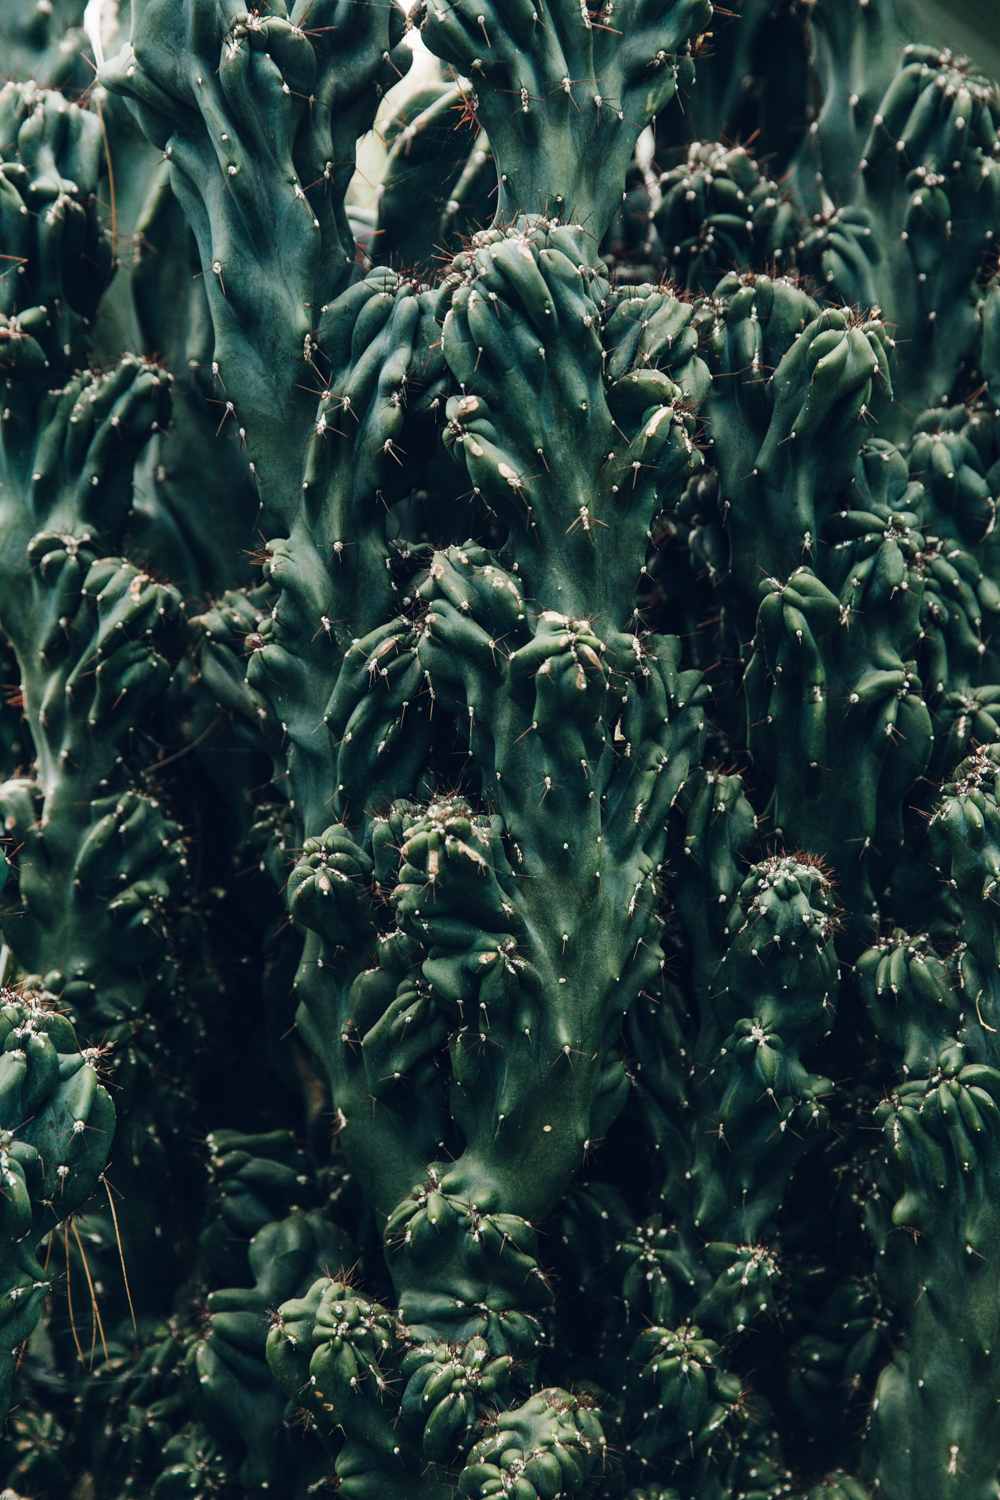 Cactus close-up.